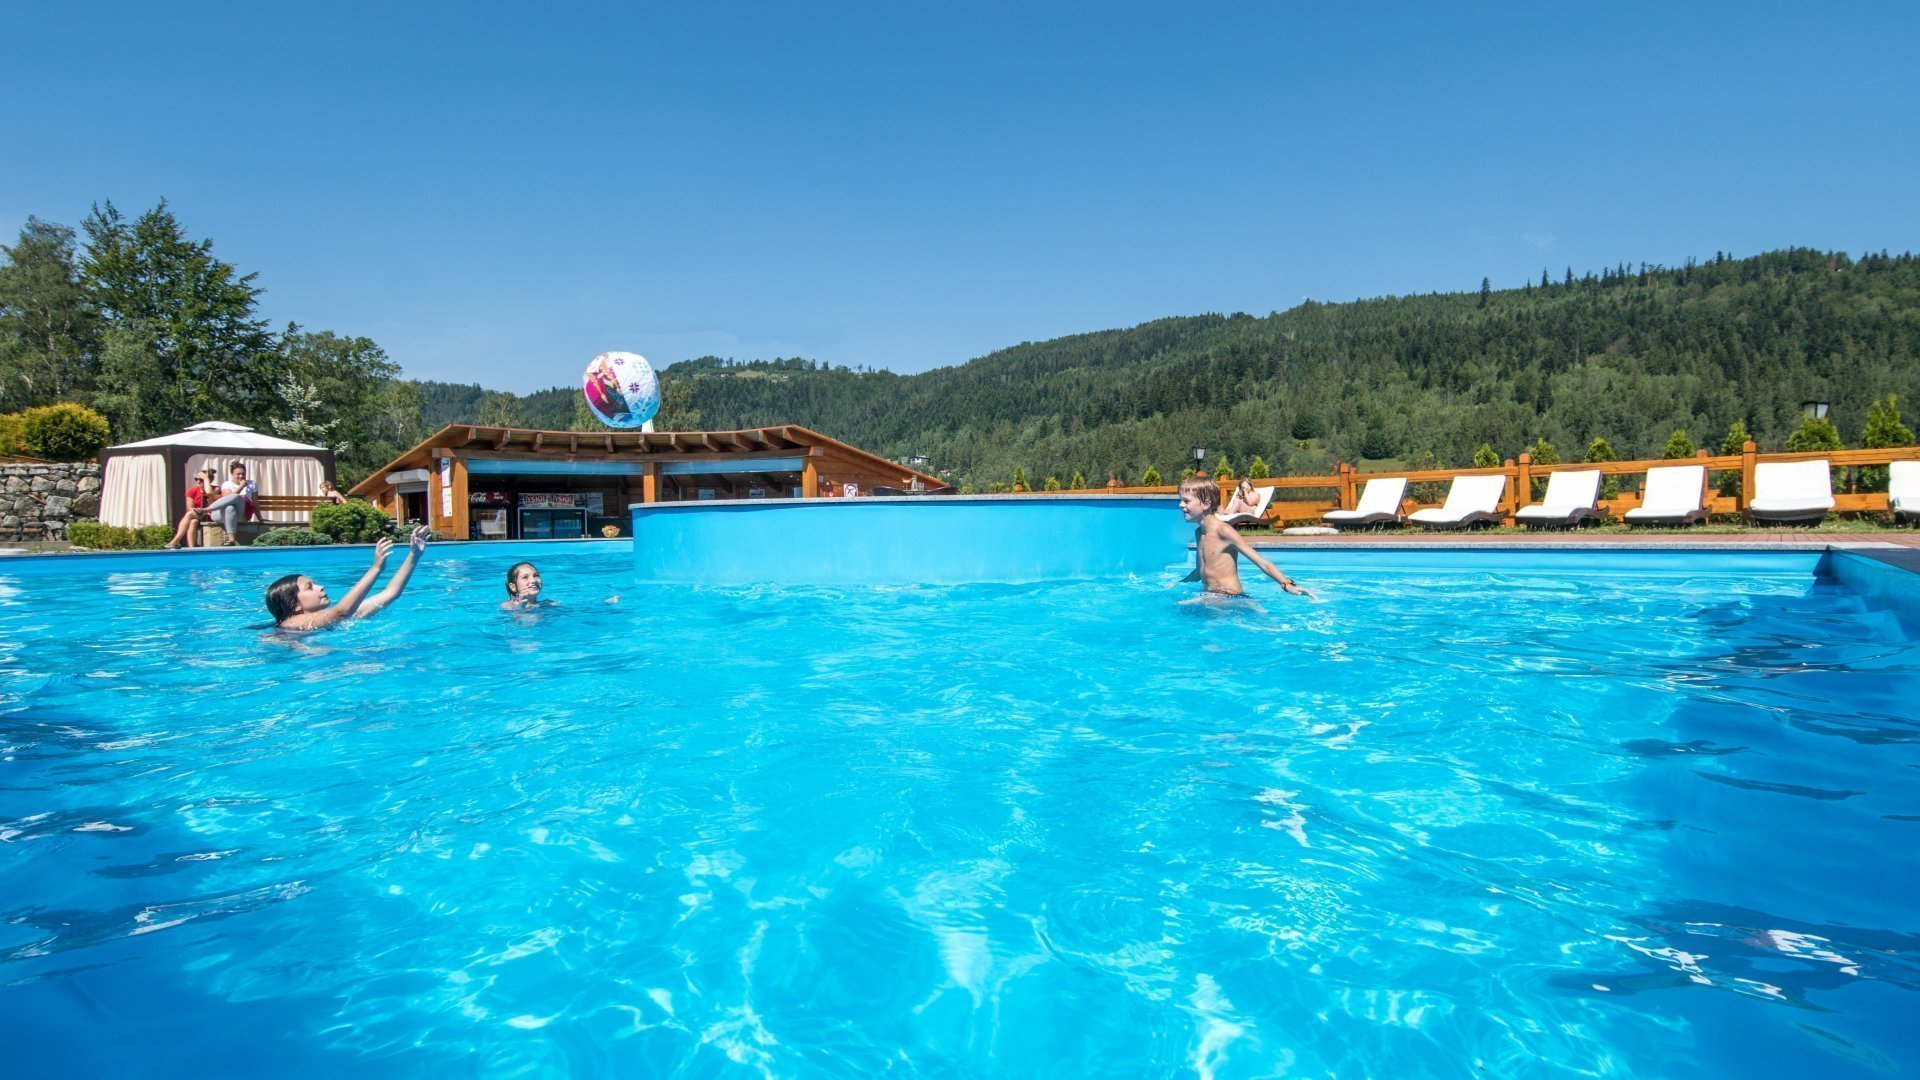 SUMMER IN THE MOUNTAINS – BURTSTING WITH ATTRACTIONS – children up to 5 years of age FREE OF CHARGE